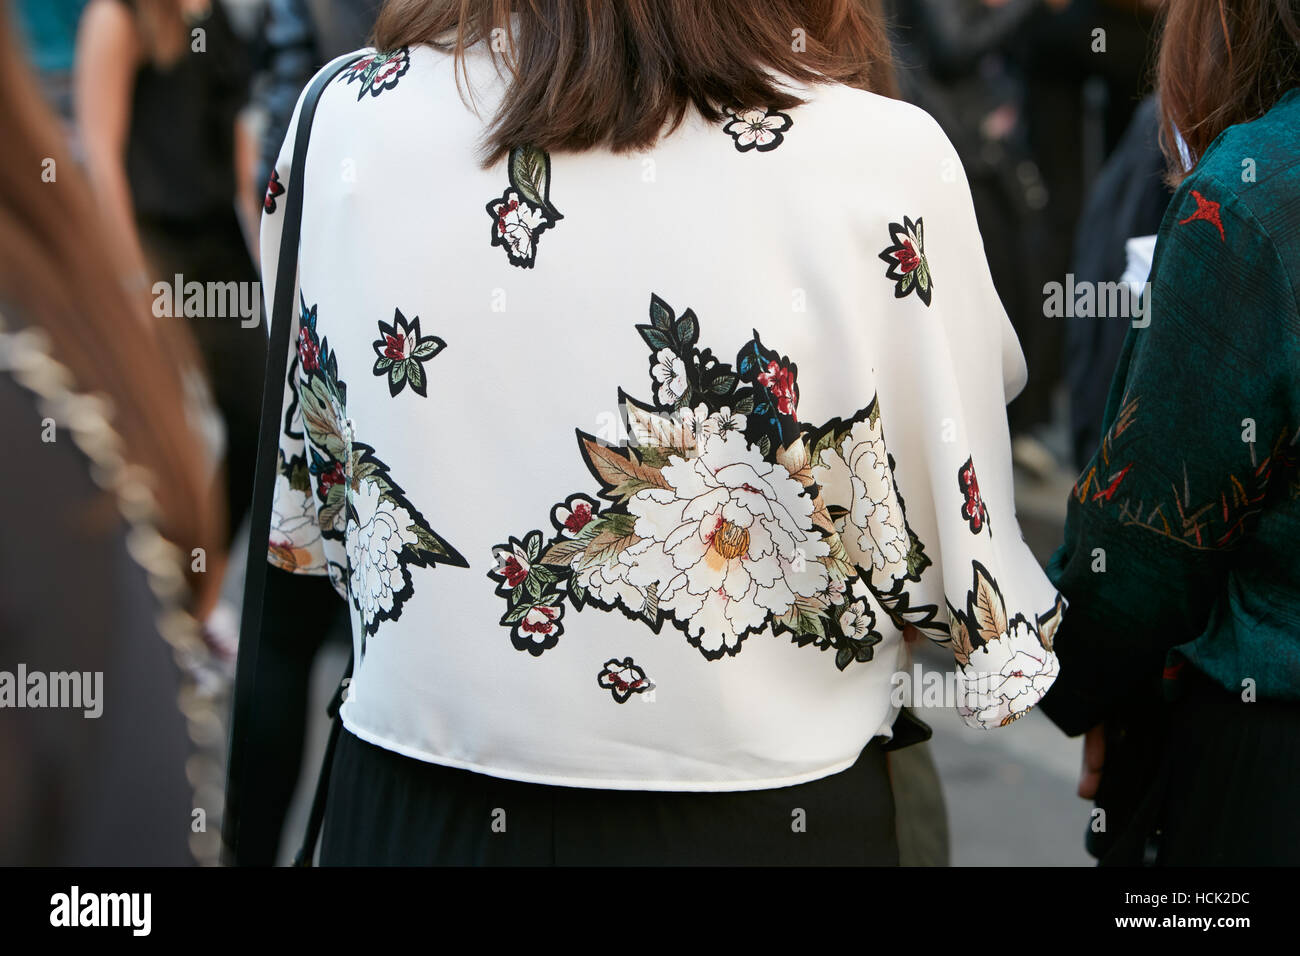 Woman with white shirt with floral design before Salvatore Ferragamo fashion show, Milan Fashion Week street style - Stock Image